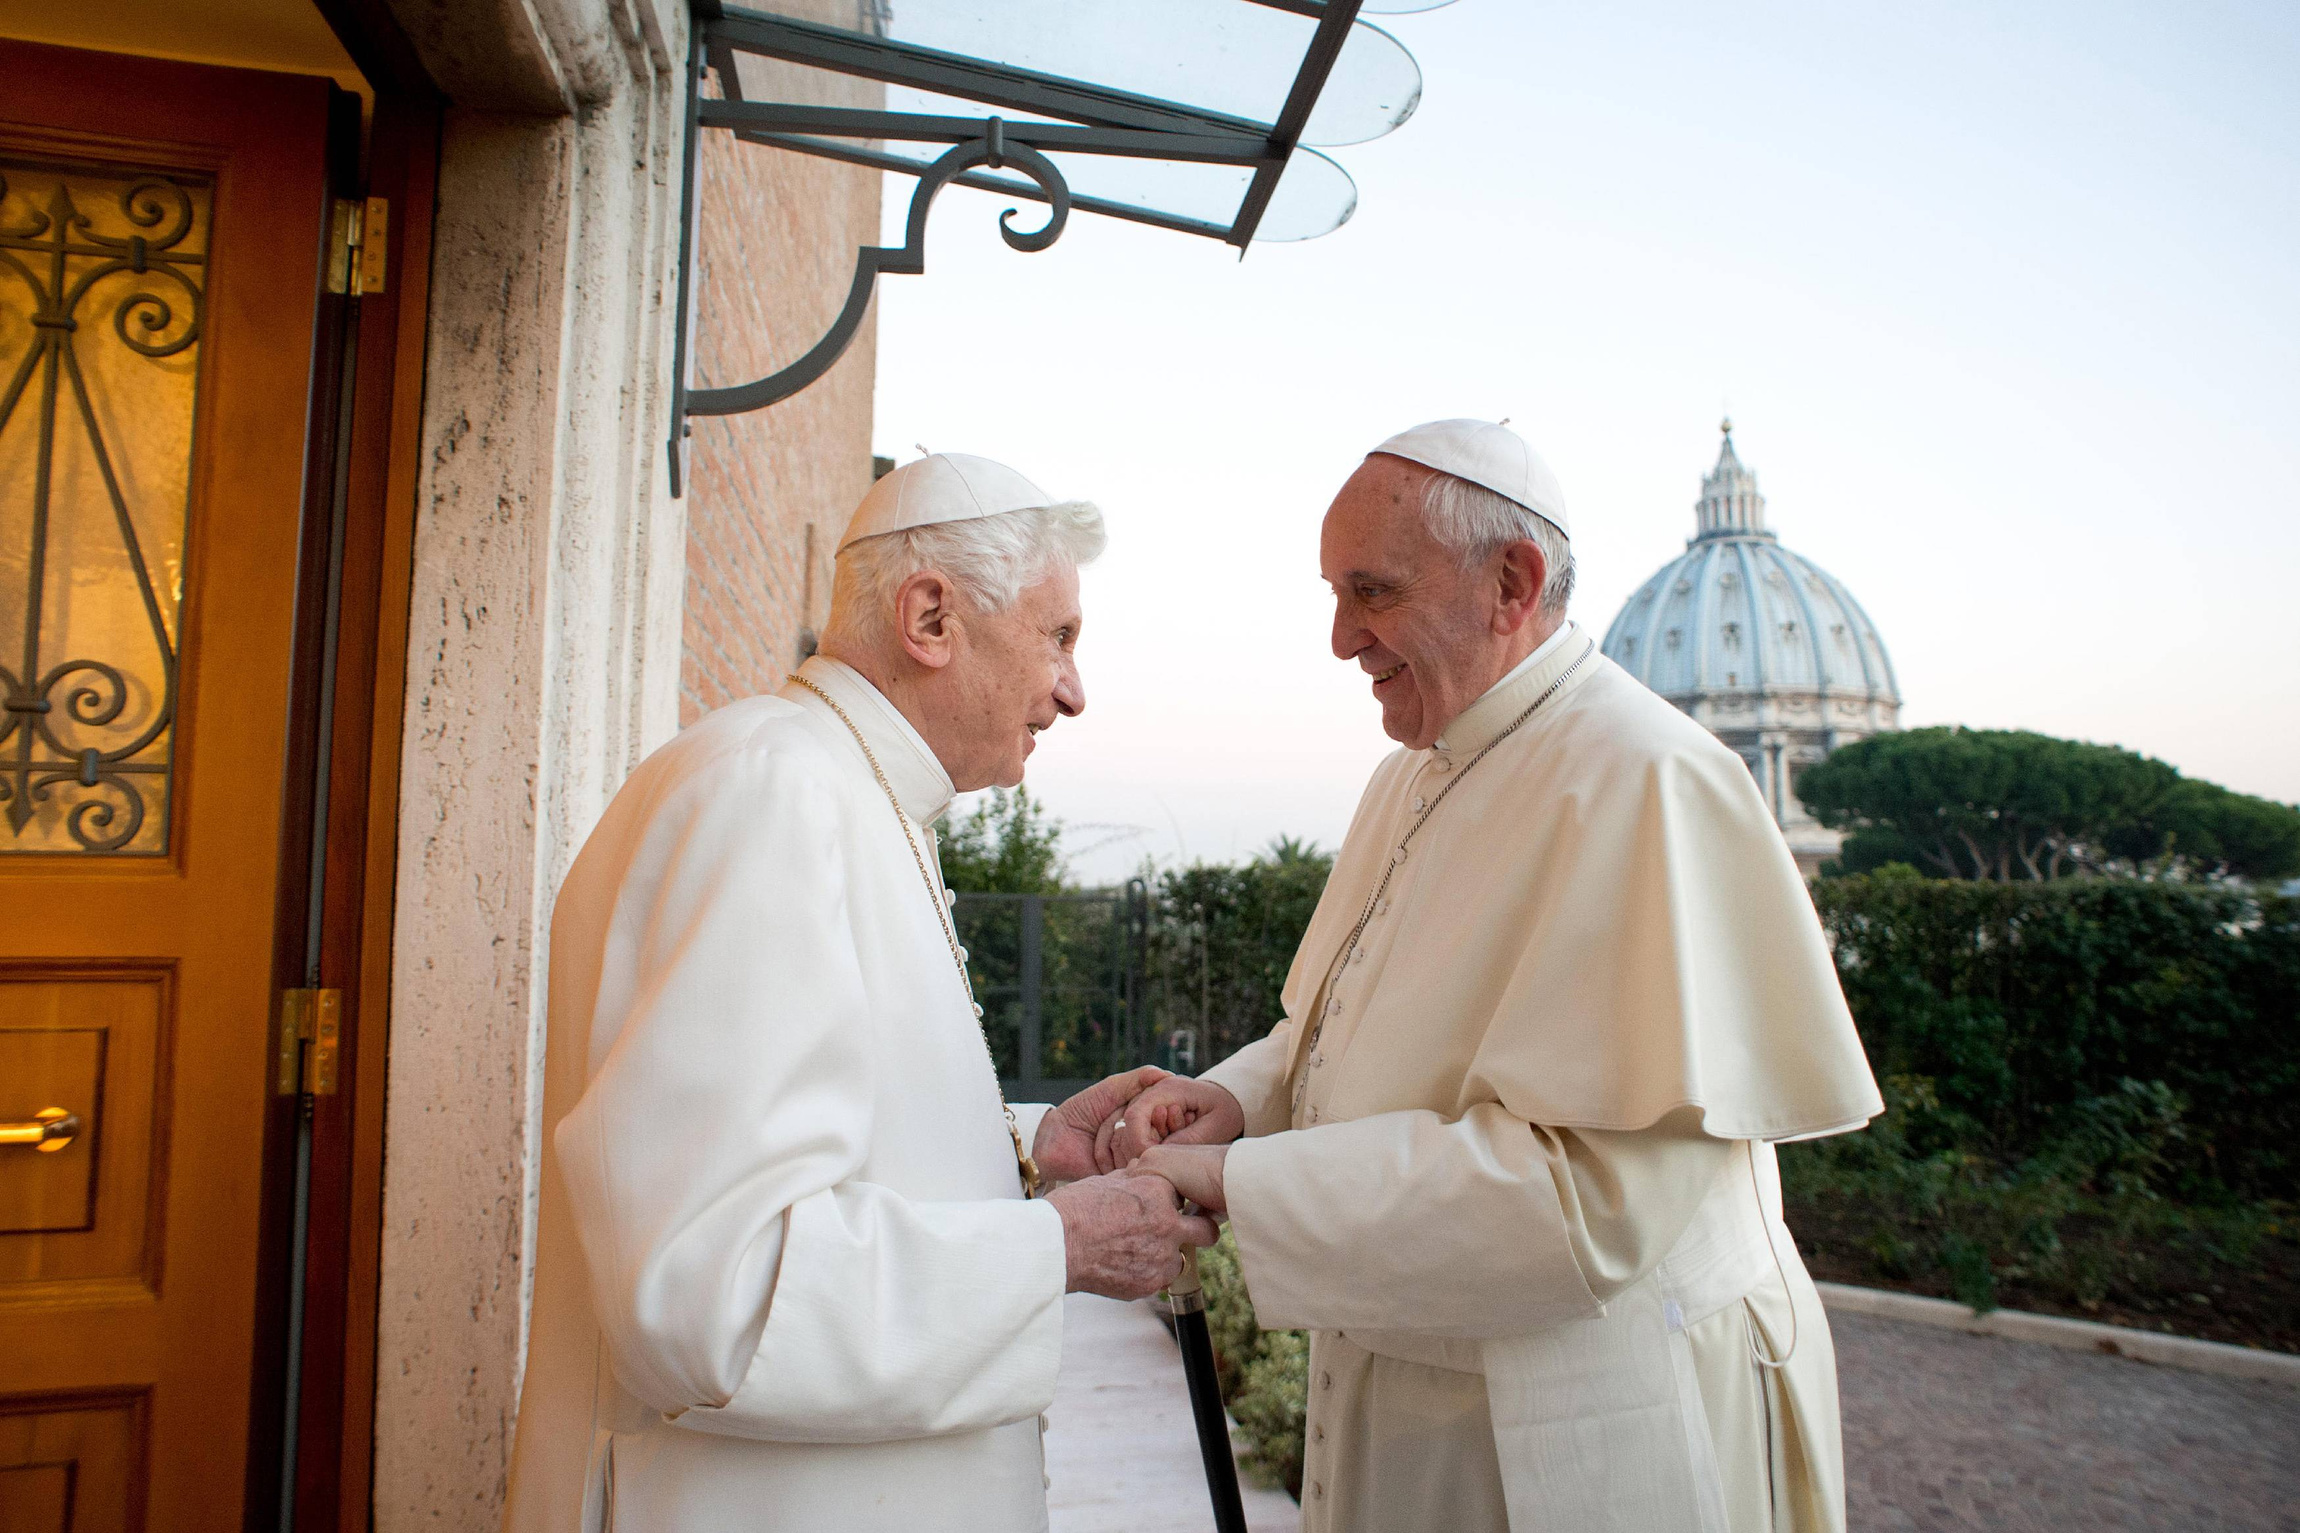 BLOG - DEACON GREG Retired Pope Benedict XVI greets Pope Francis at Mater Ecclesiae monastery at Vatican